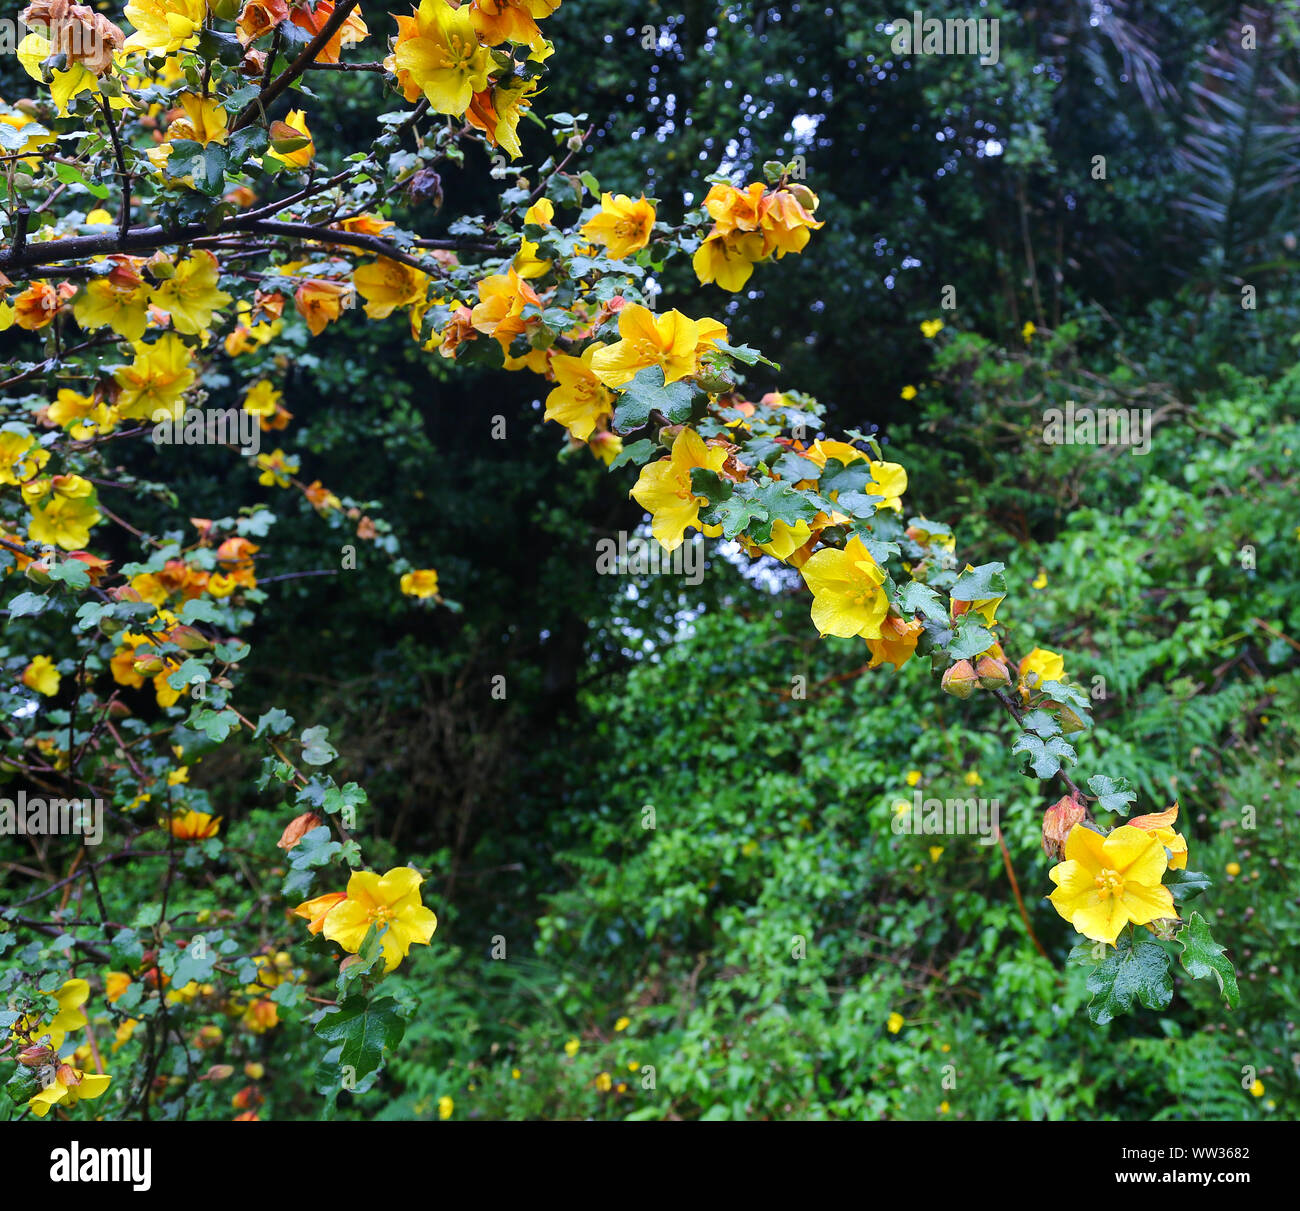 The yellow flowers of an unknown plant on St Mary's Island, Isles of Scilly, England, UK Stock Photo